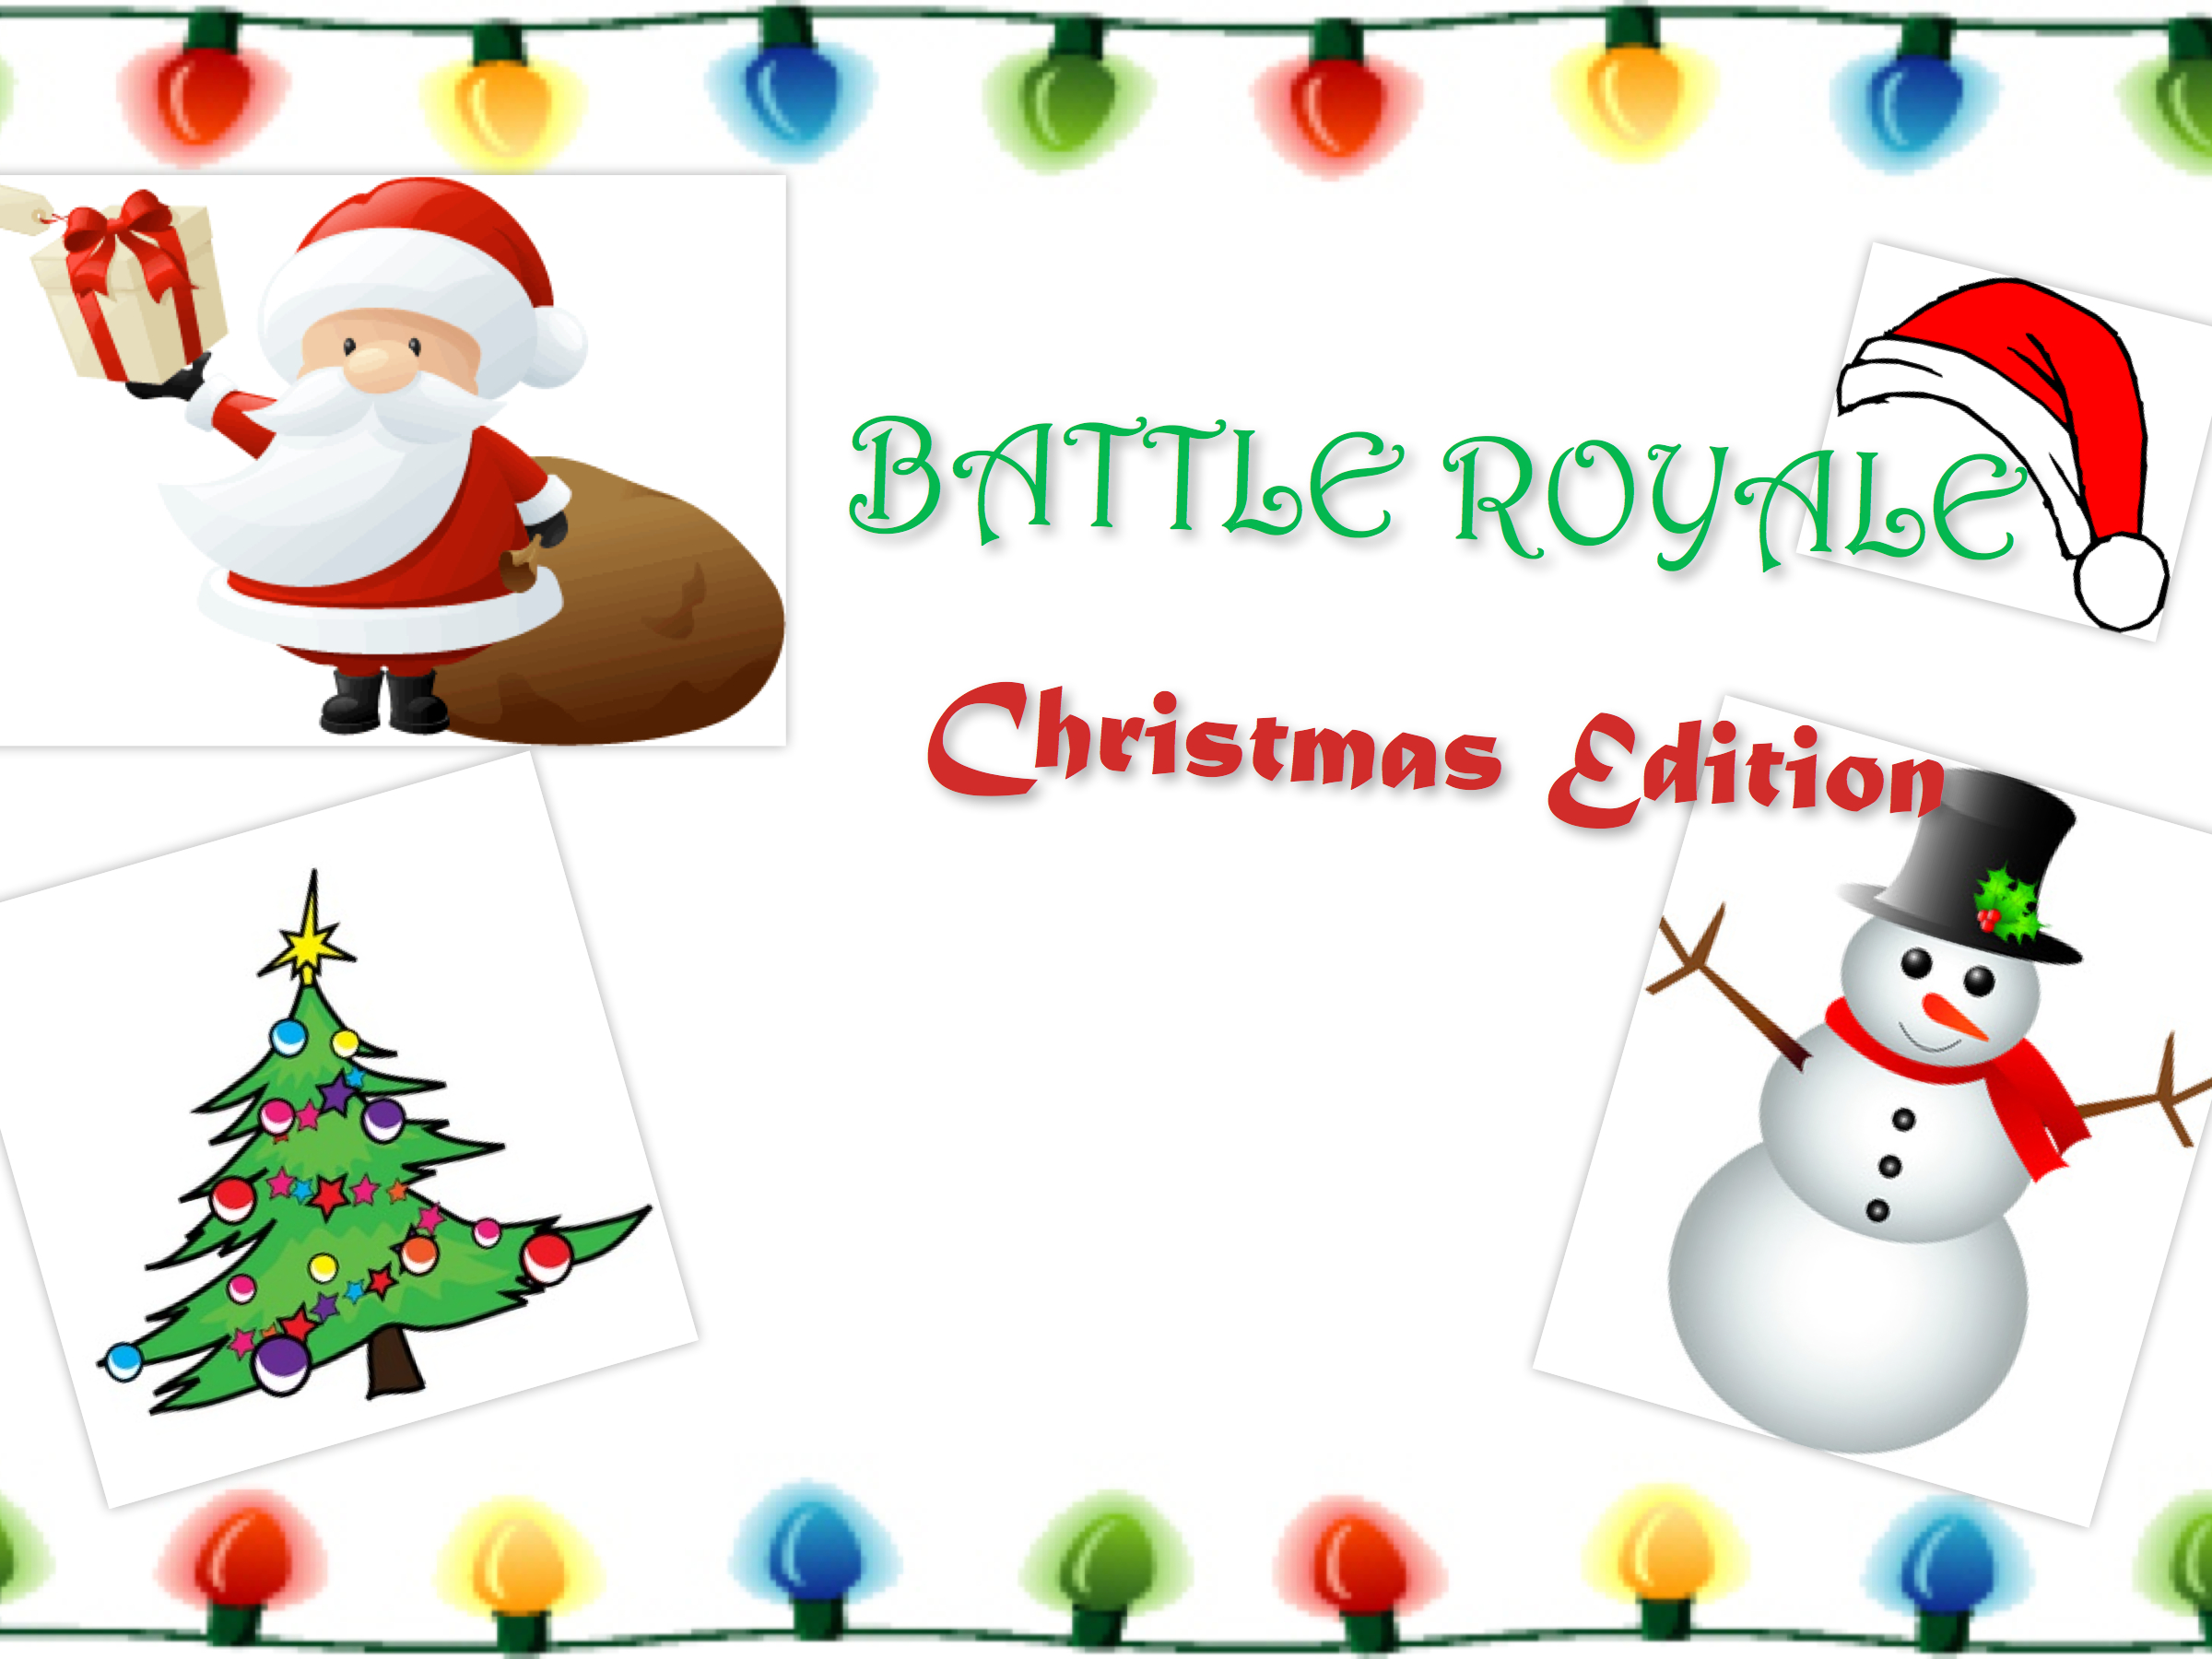 Battle Royale Christmas Edition